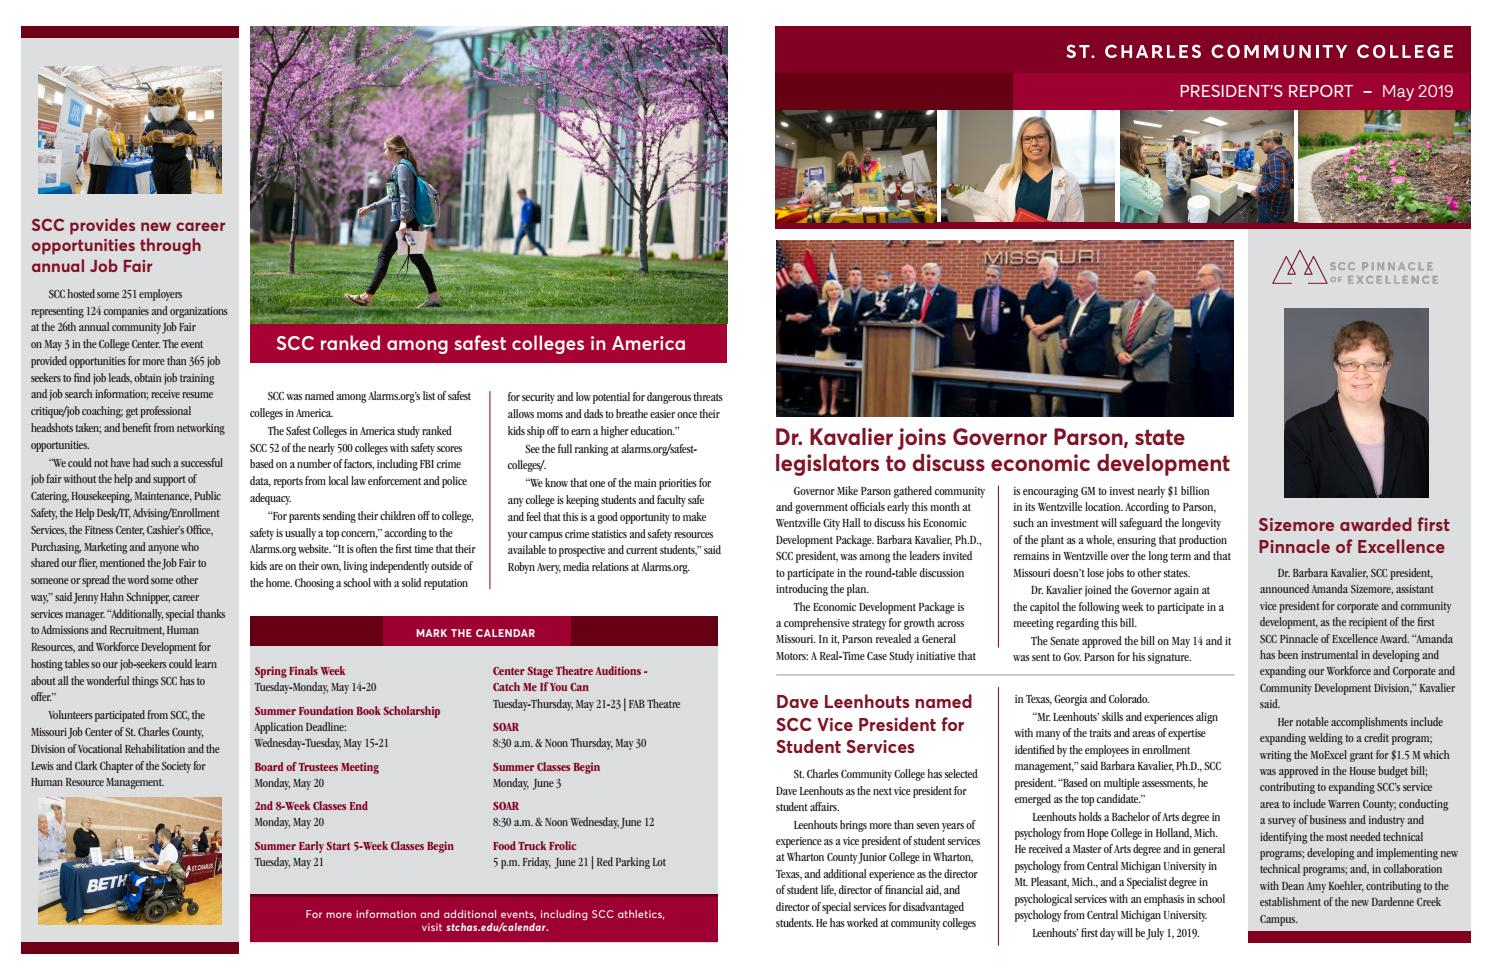 President's Report To The Board – May 2019St. Charles Throughout St Charles Community College Calendar